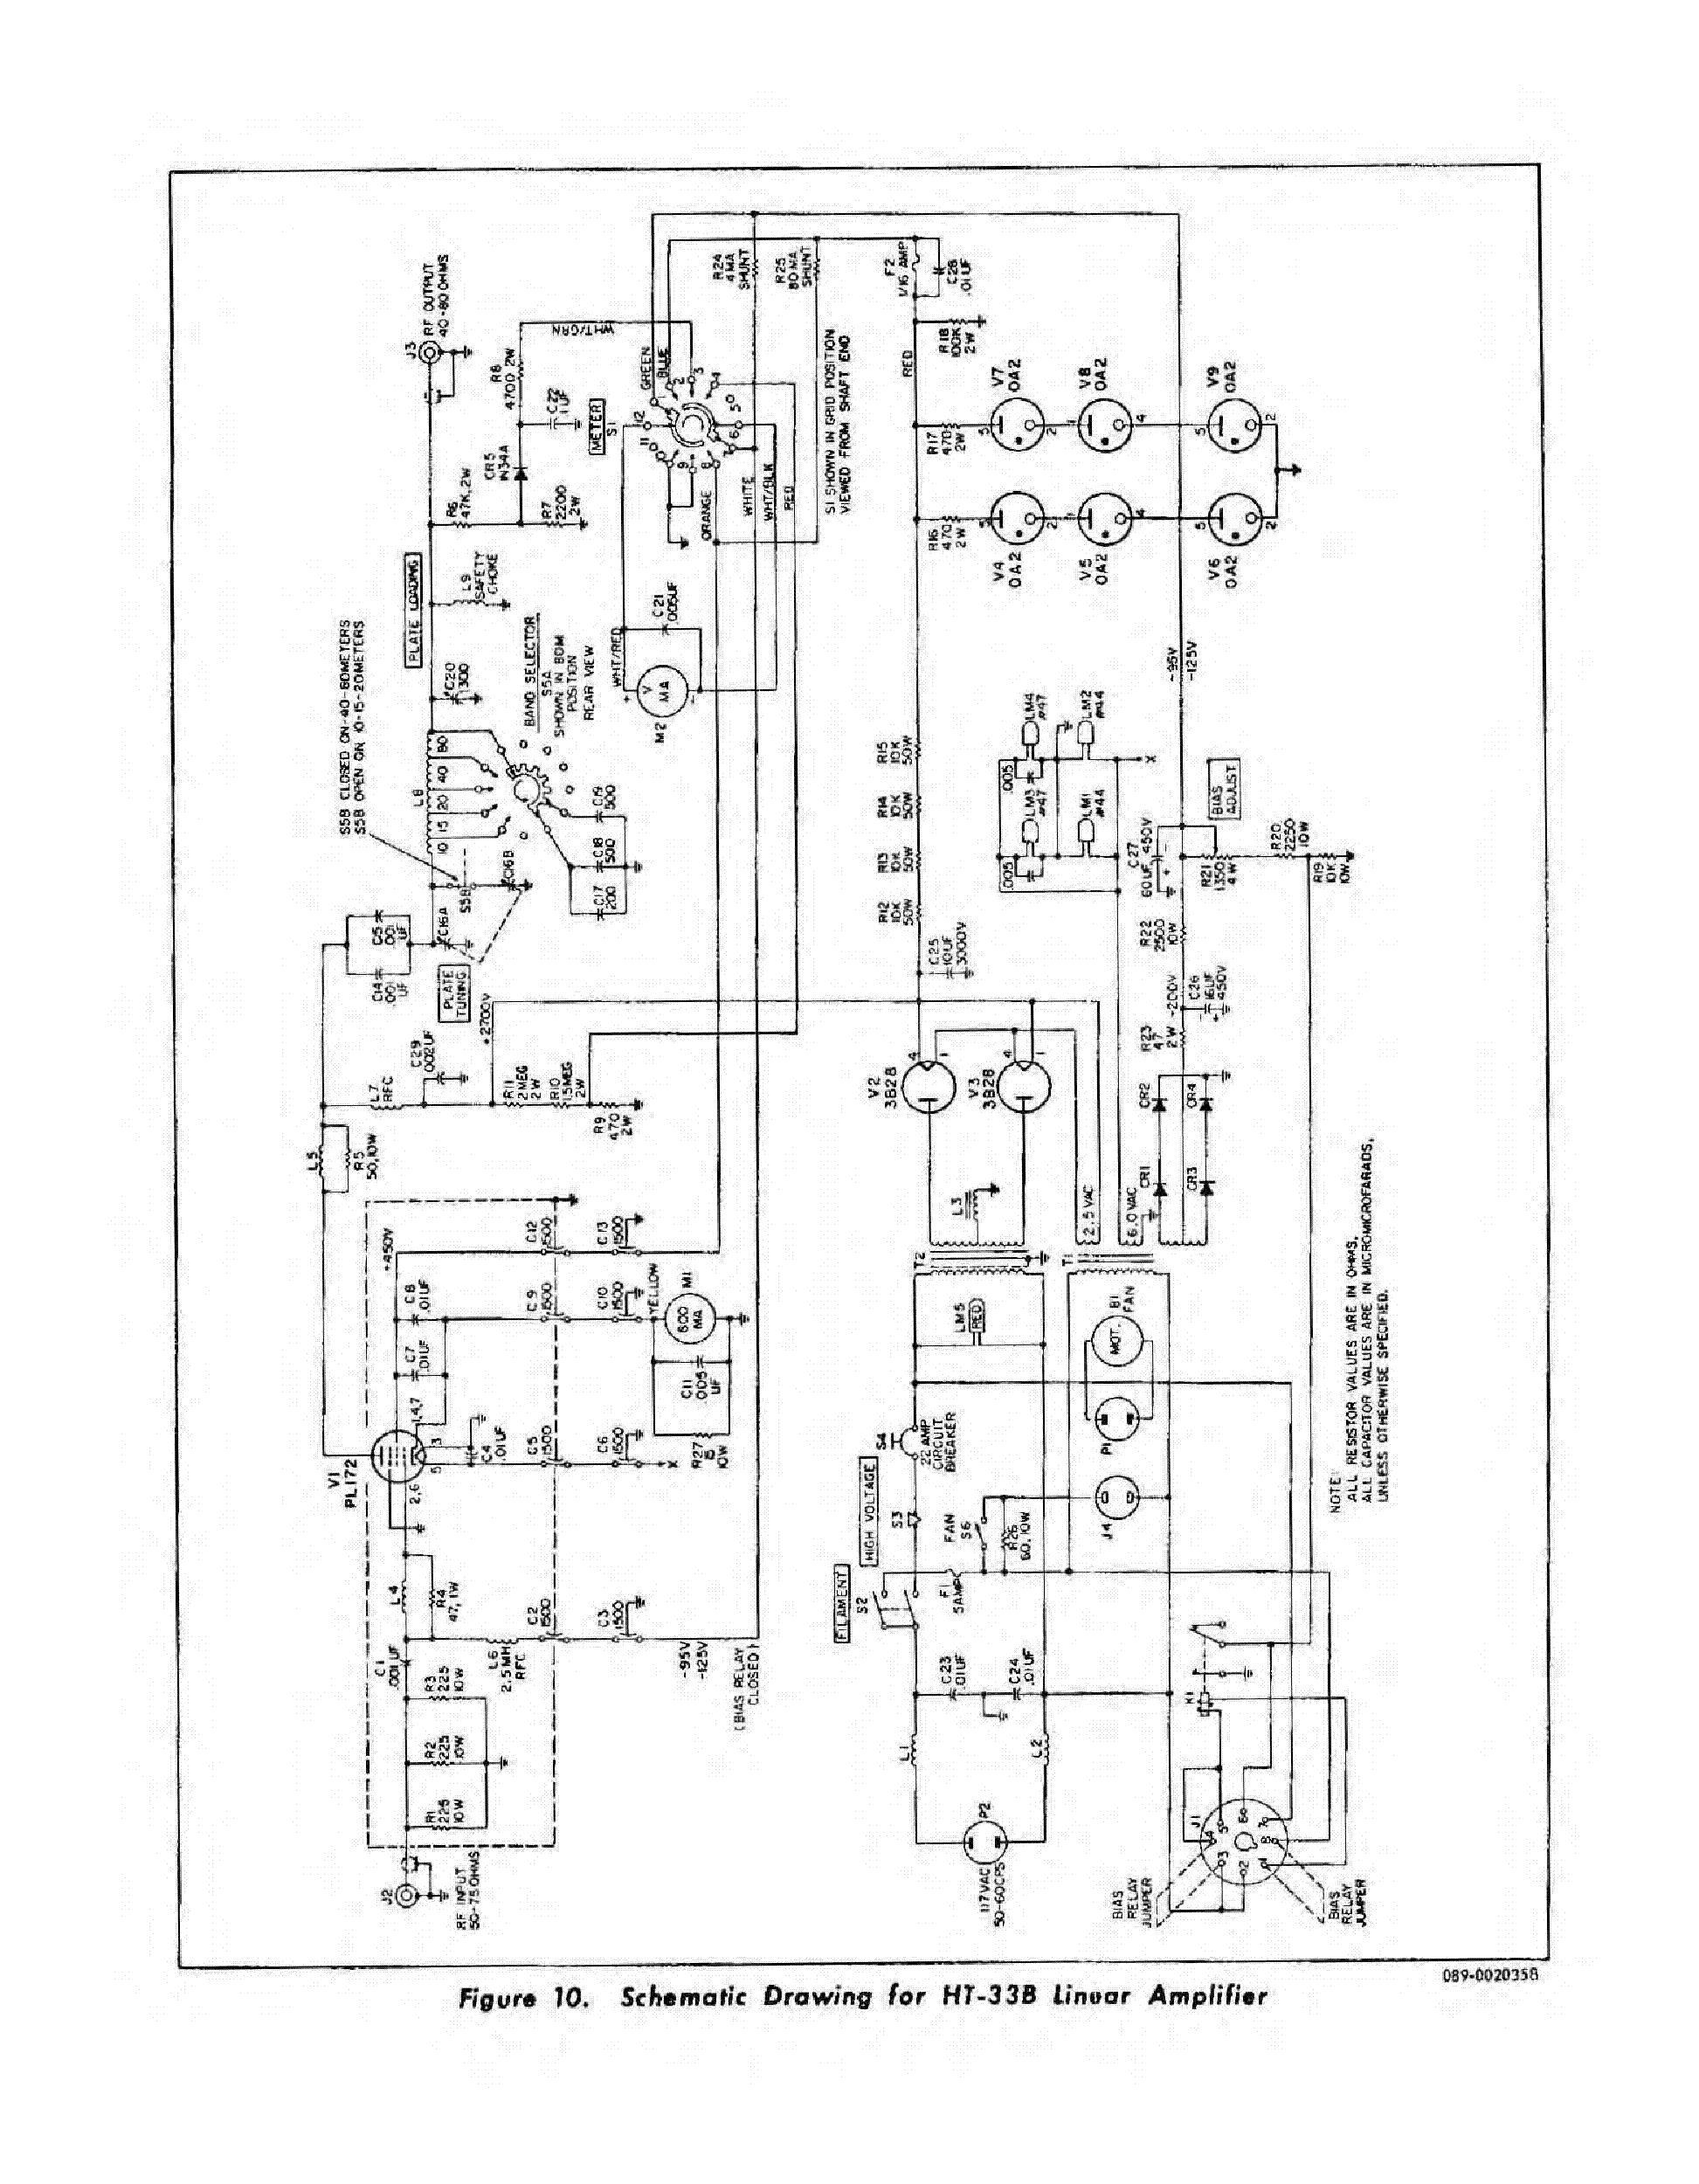 3 500z  lifier Schematic furthermore Ham Radio Linear  lifier Schematics furthermore Ham Radio Linear Lifier Schematics besides Rf Attenuator Circuit Diagram together with Linear  lifier Schematics. on tube linear lifier cb radio